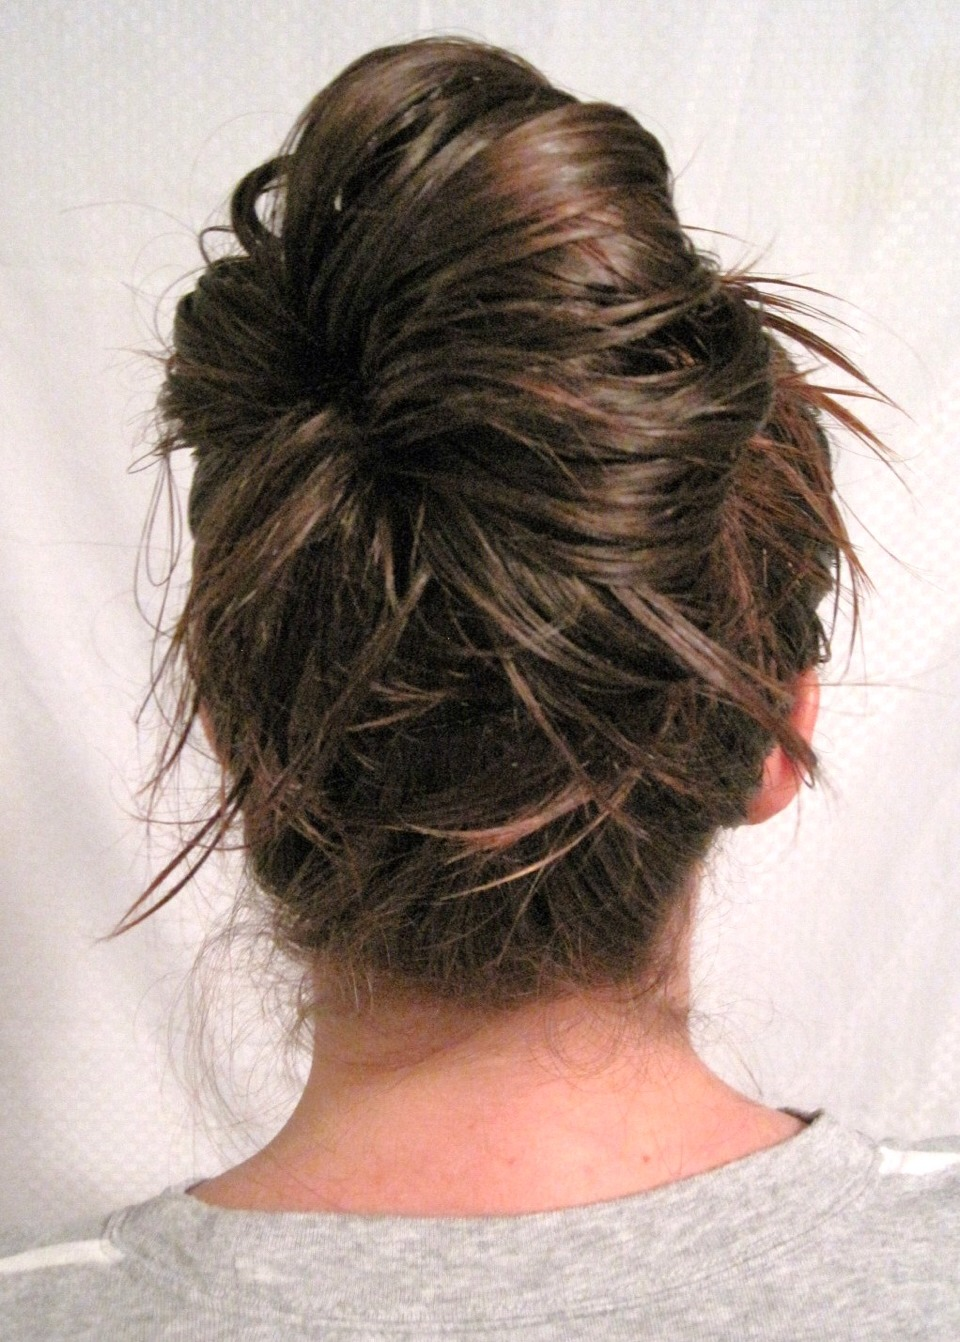 Throw your hair up In a messy bun. You have no where to go, and no one to impress!